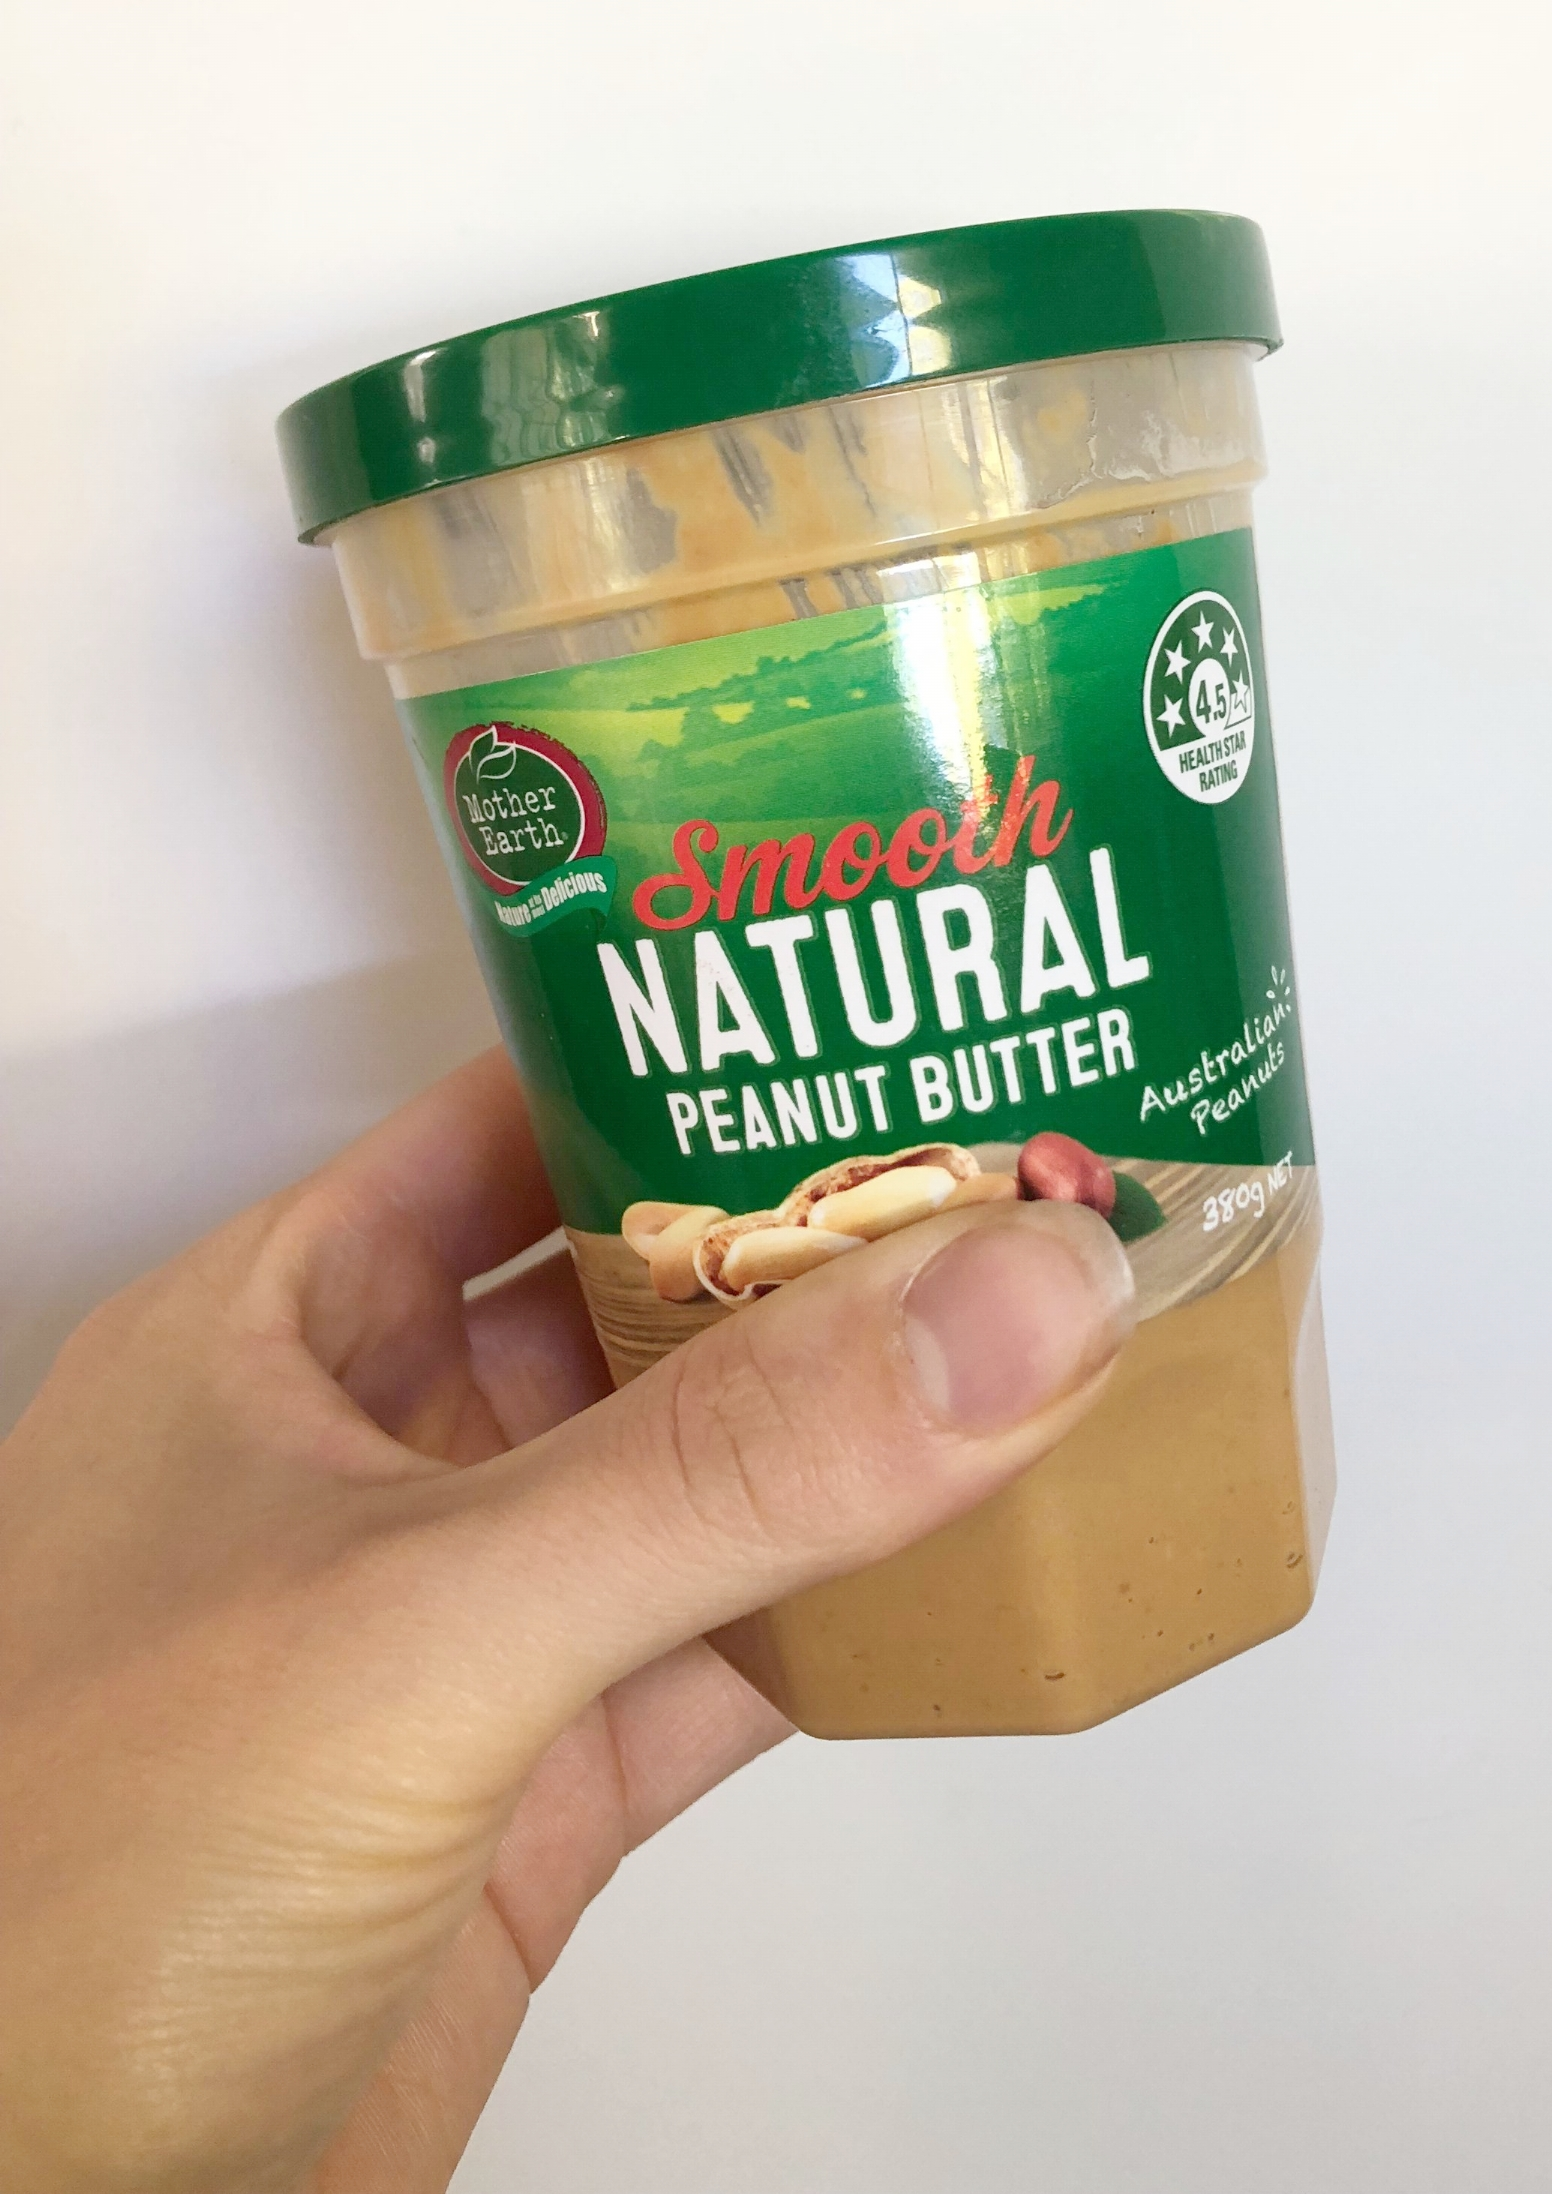 Peanut butter is everything.